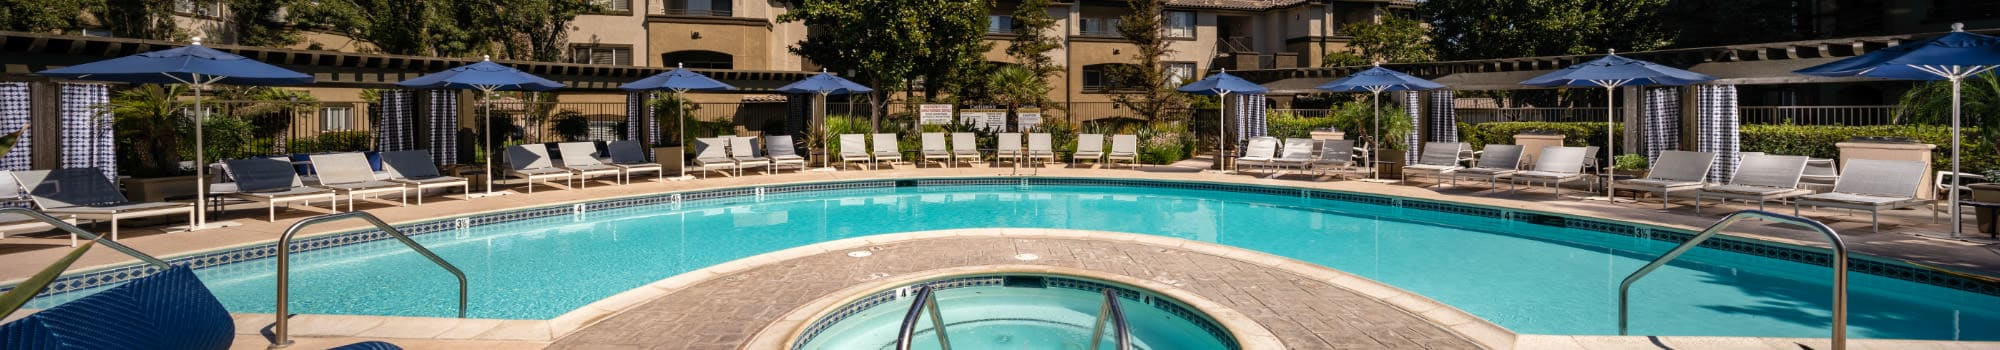 Furnished apartments at Castlerock at Sycamore Highlands in Riverside, California